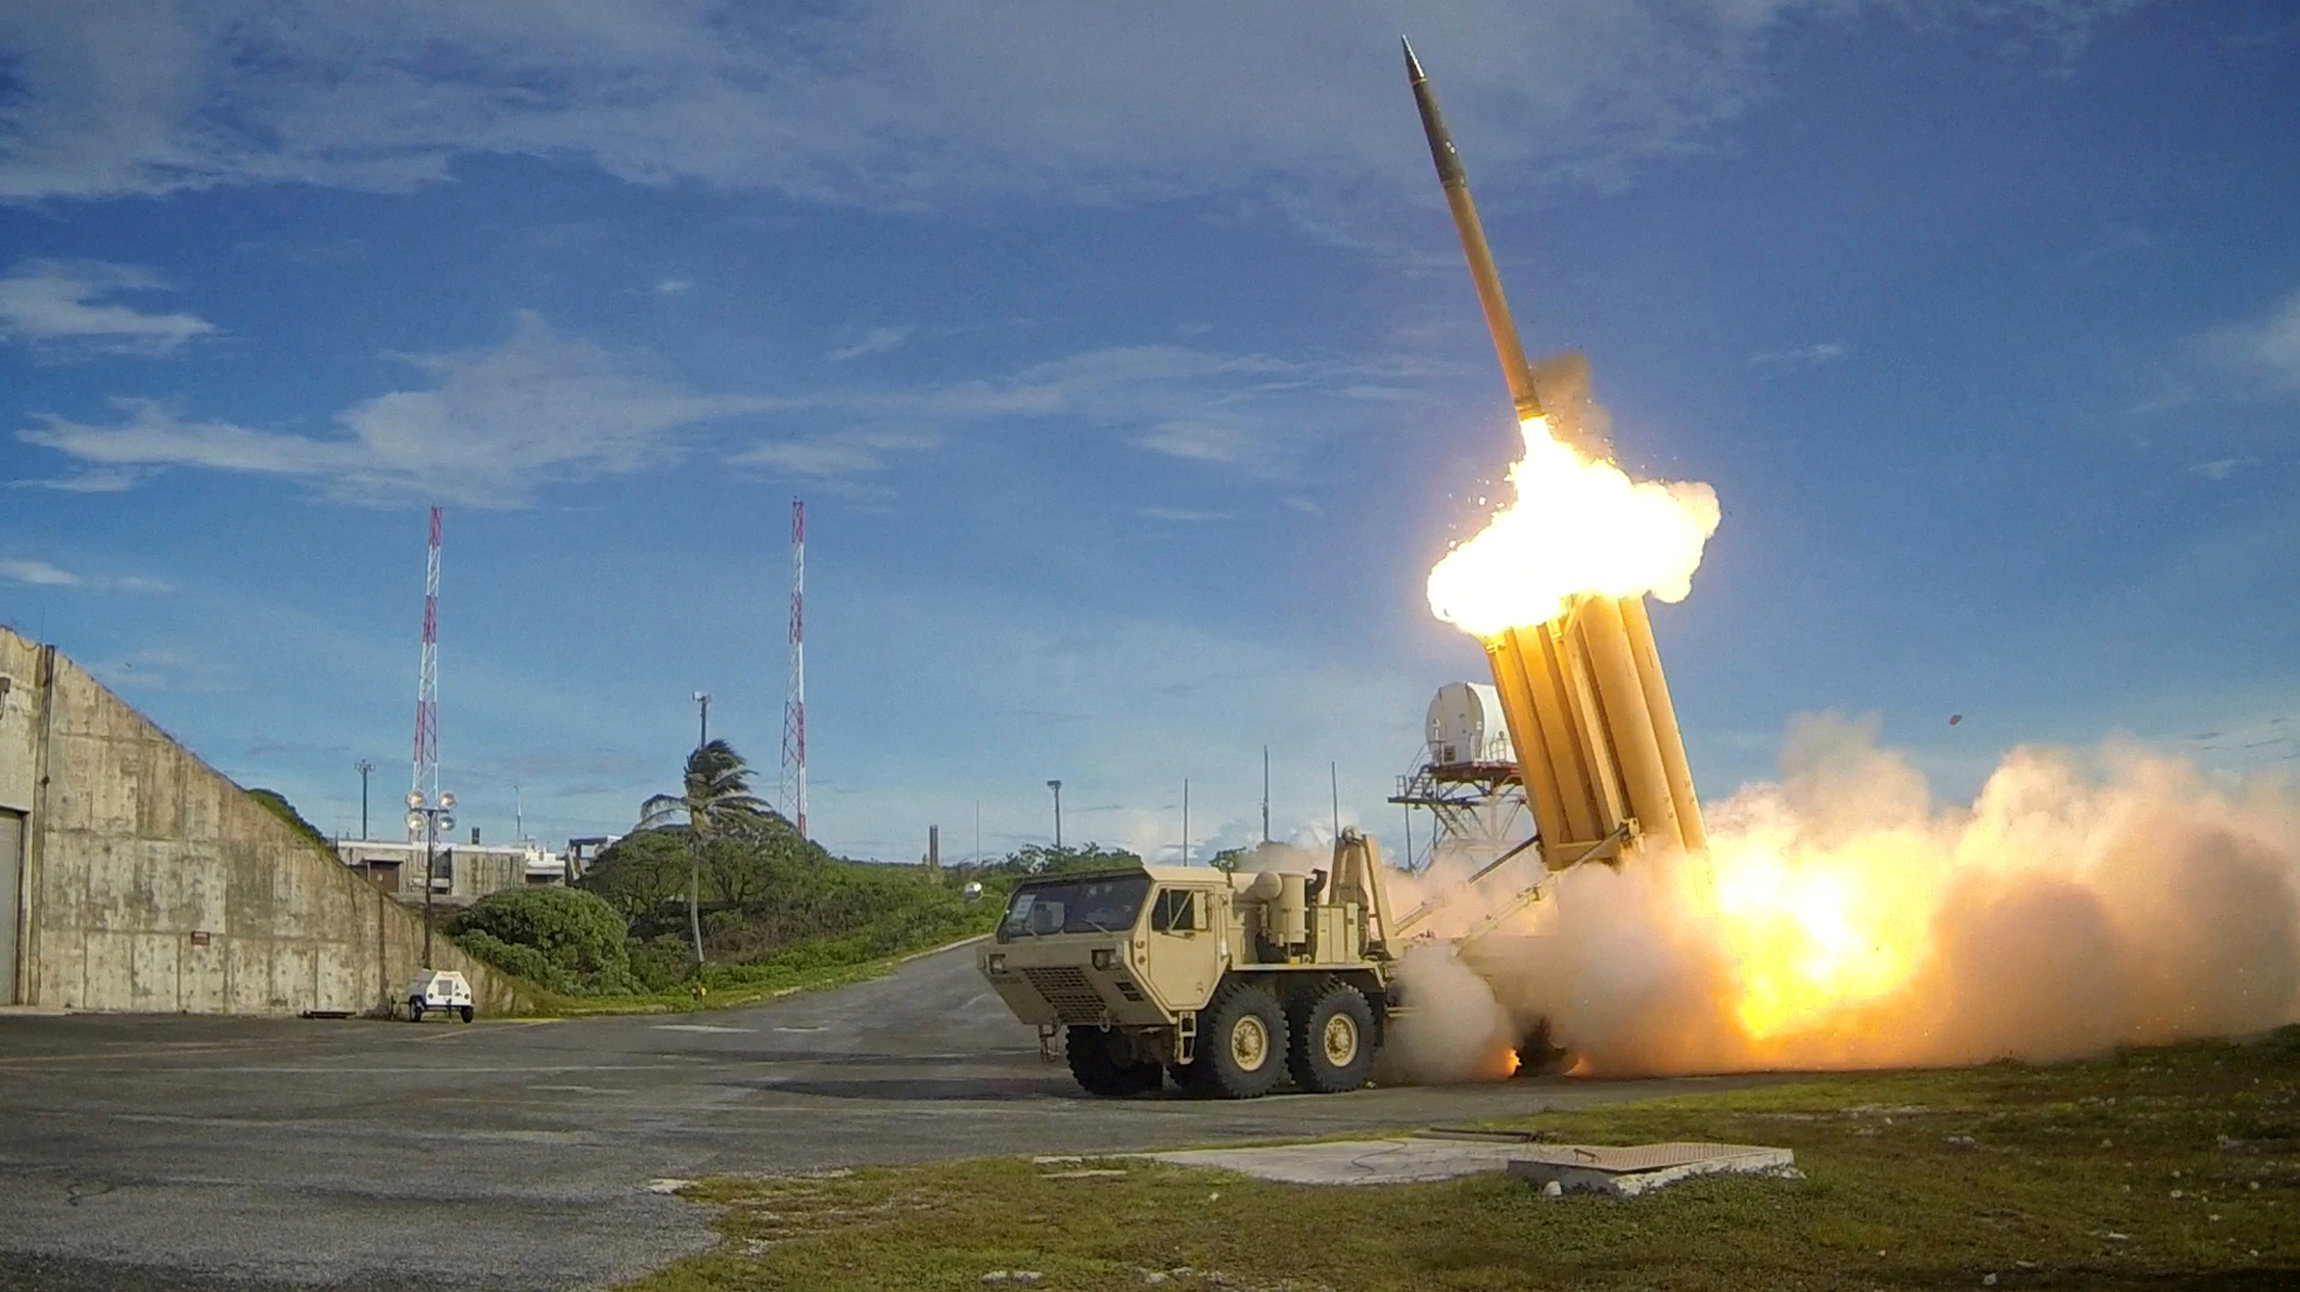 : A Terminal High Altitude Area Defense (THAAD) interceptor is launched during a successful intercept test, in this undated handout photo provided by the U.S. Department of Defense, Missile Defense Agency. U.S. Department of Defense, Missile Defense